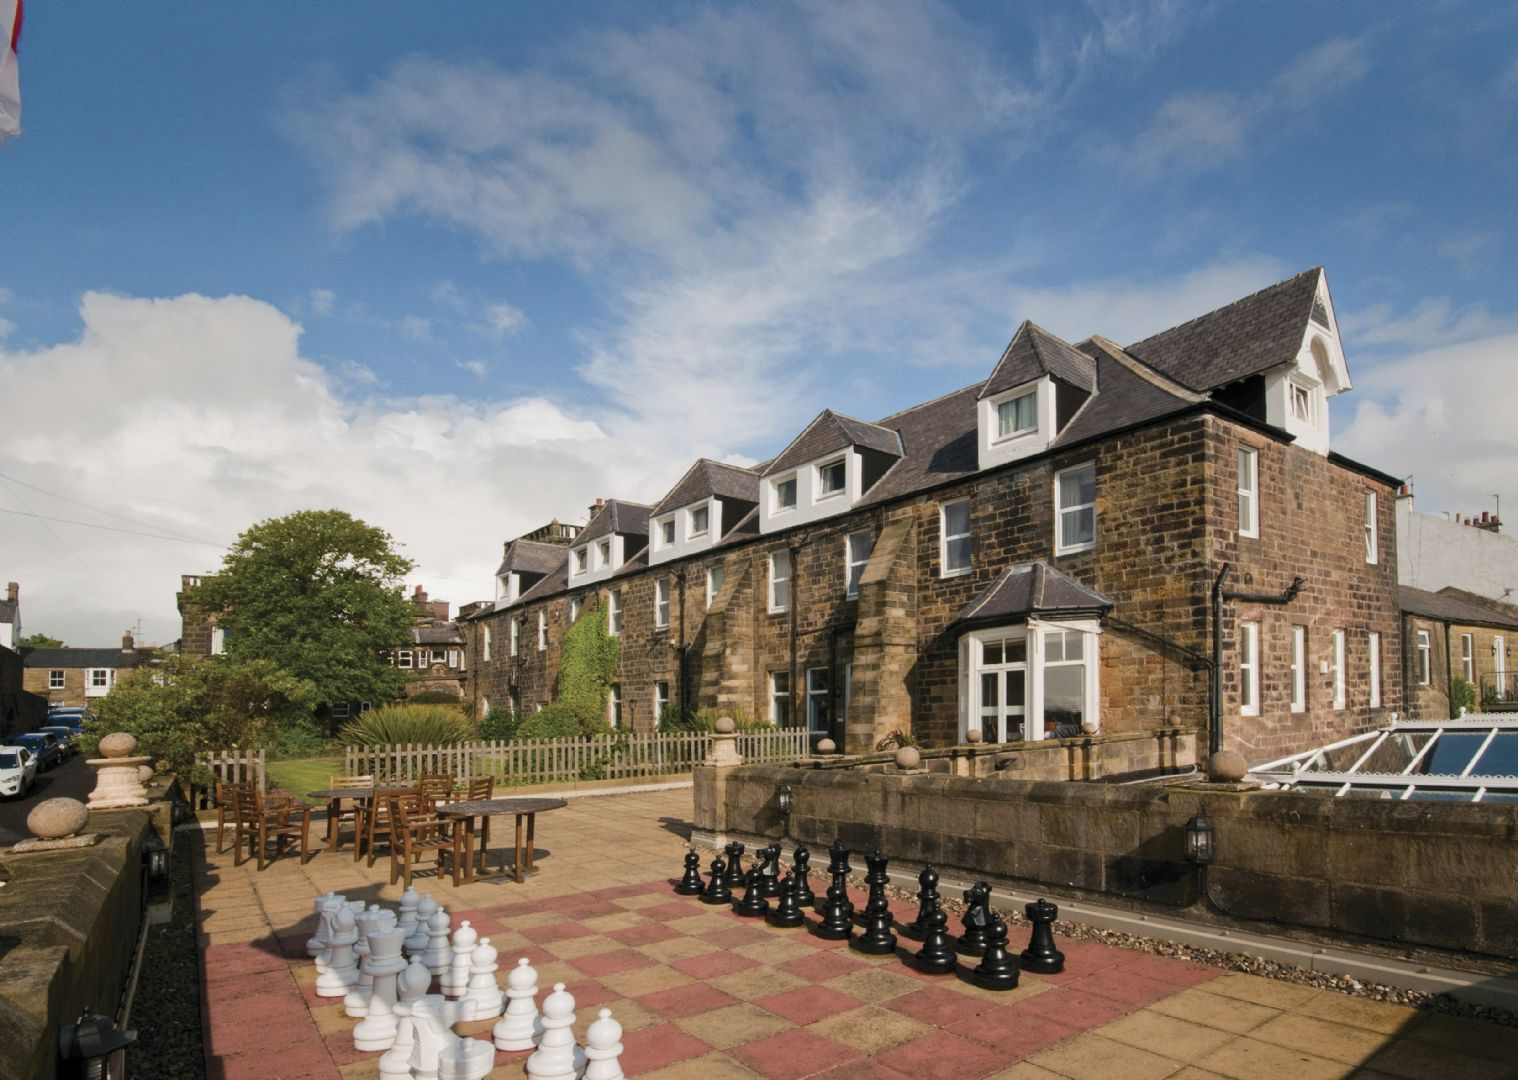 leisure-cycling-holiday-northumberland-accomodation-alnmouth.jpg - UK - Northumberland - Alnmouth - Guided Leisure Cycling Holiday - Leisure Cycling